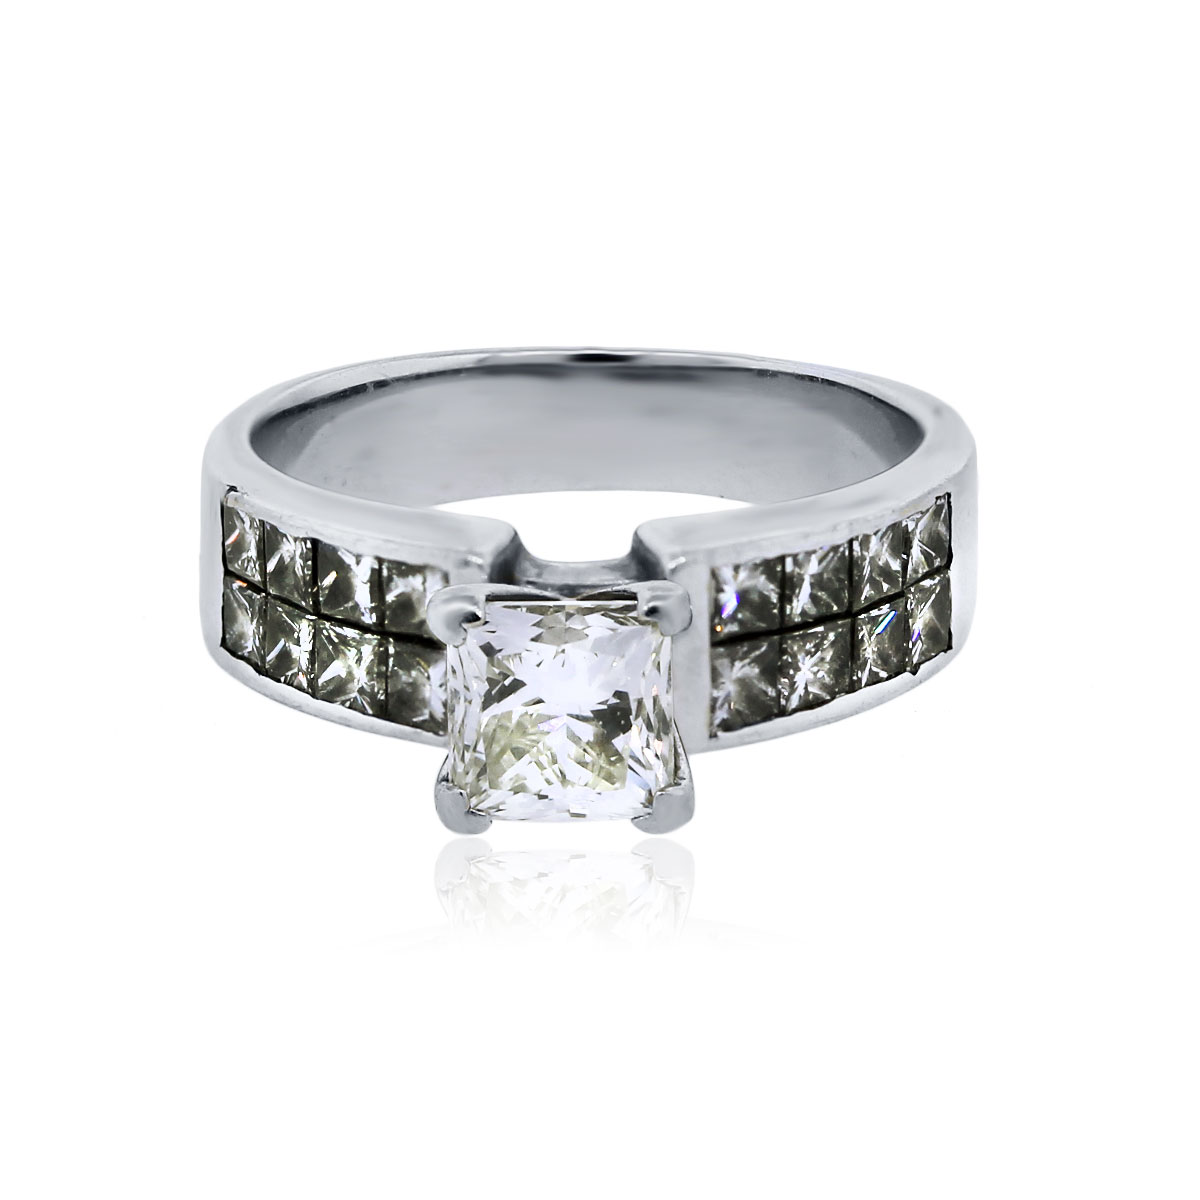 18k white gold 1ct princess cut diamond engagement ring. Black Bedroom Furniture Sets. Home Design Ideas